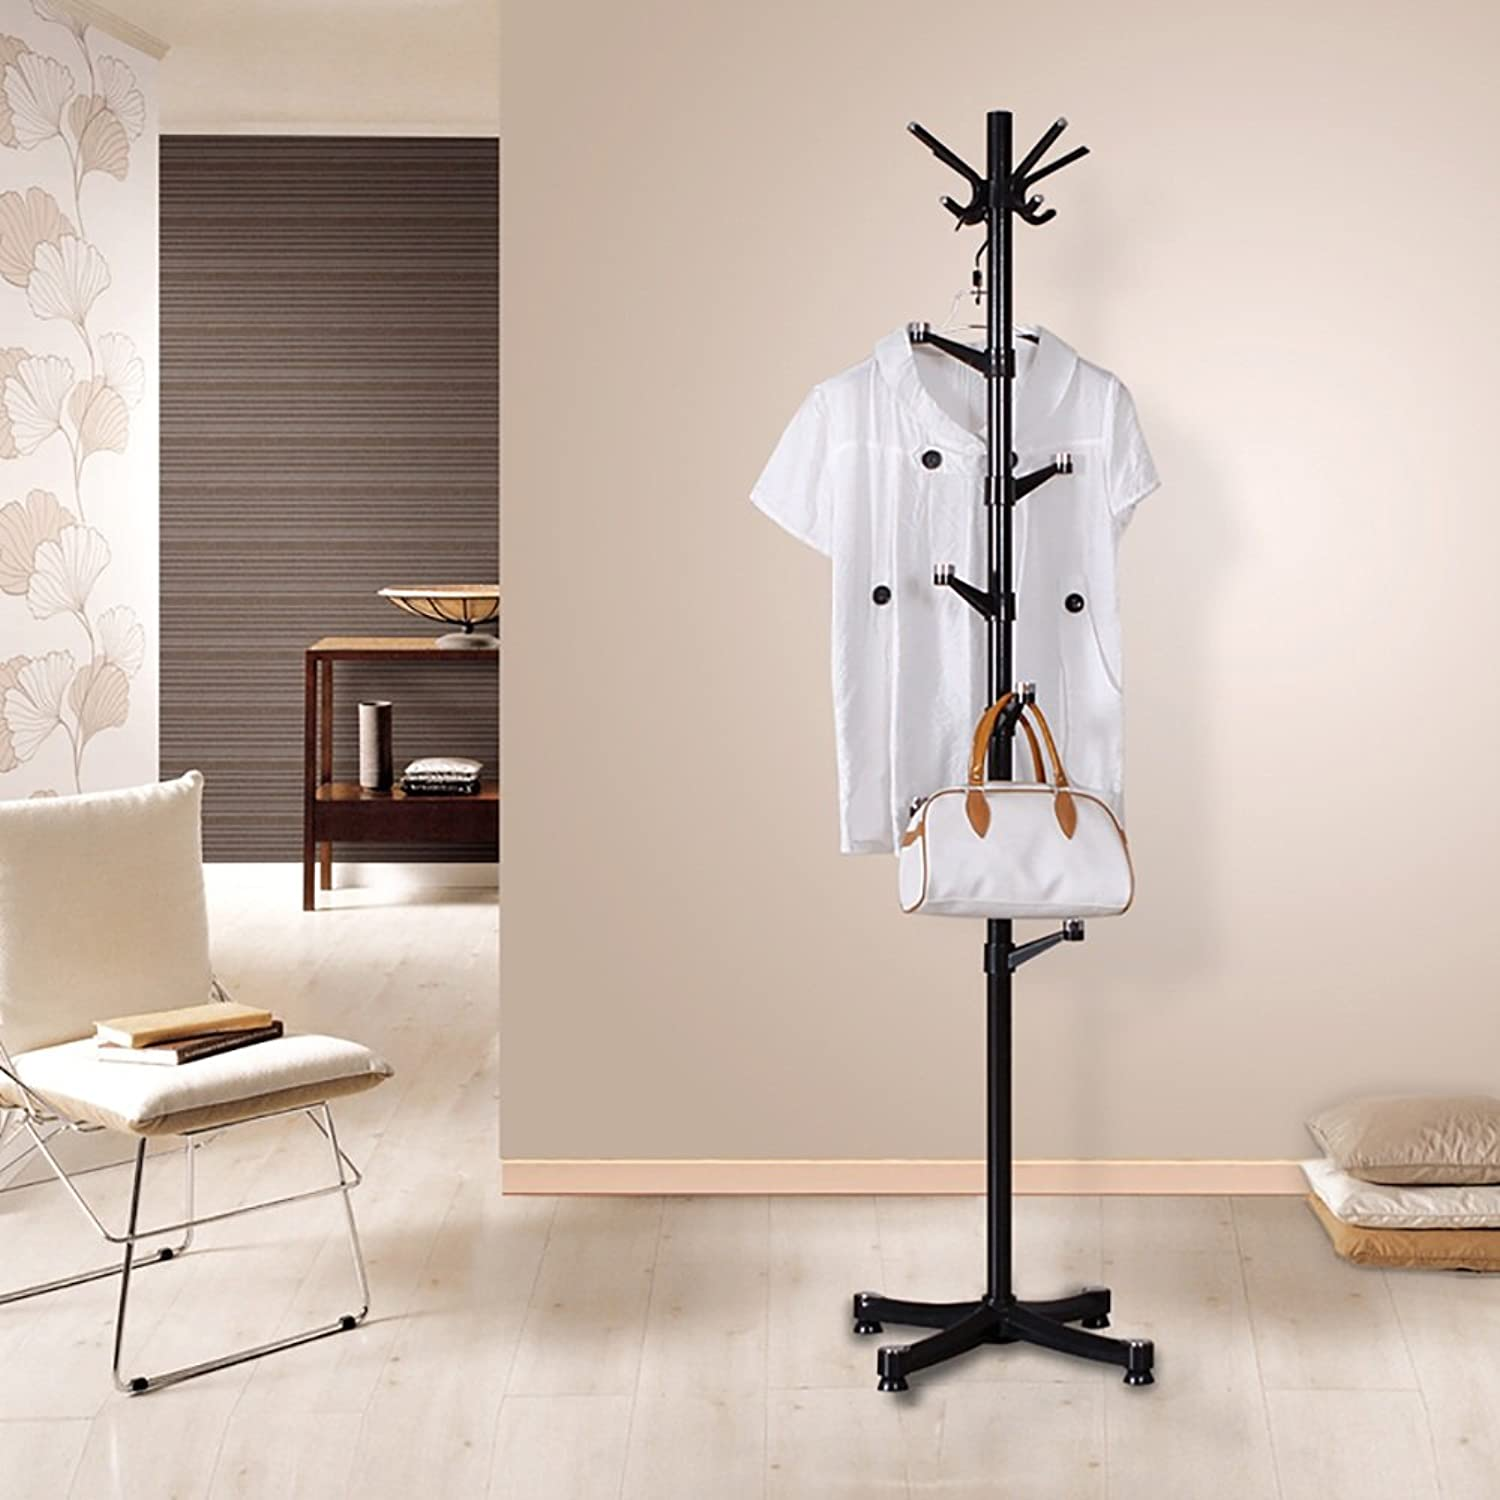 XRXY Simple Creative Coat Rack Floorstanding Bedroom Hanger Modern Multifunction Hangers (Size  175  37cm) (color   Black)